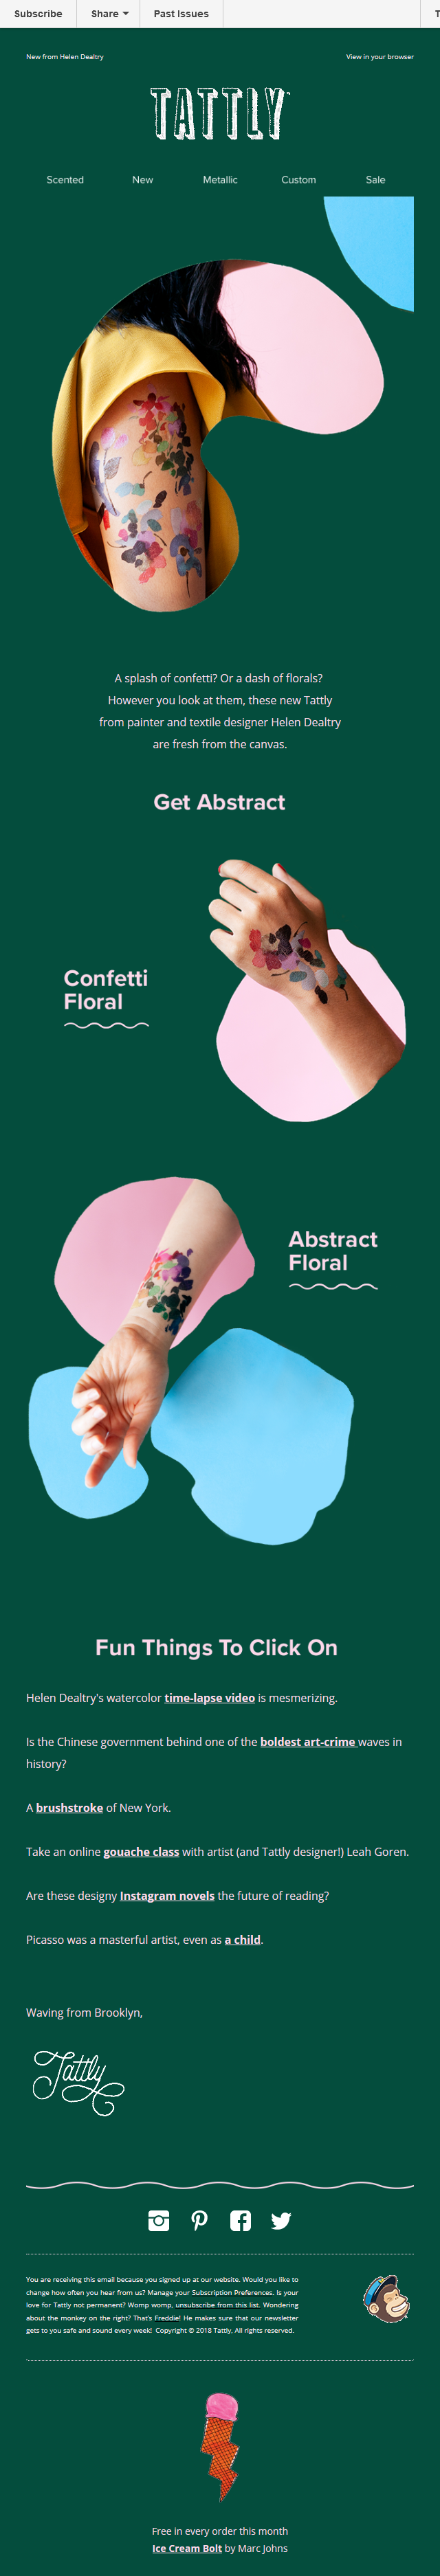 New Abstract Floral Set